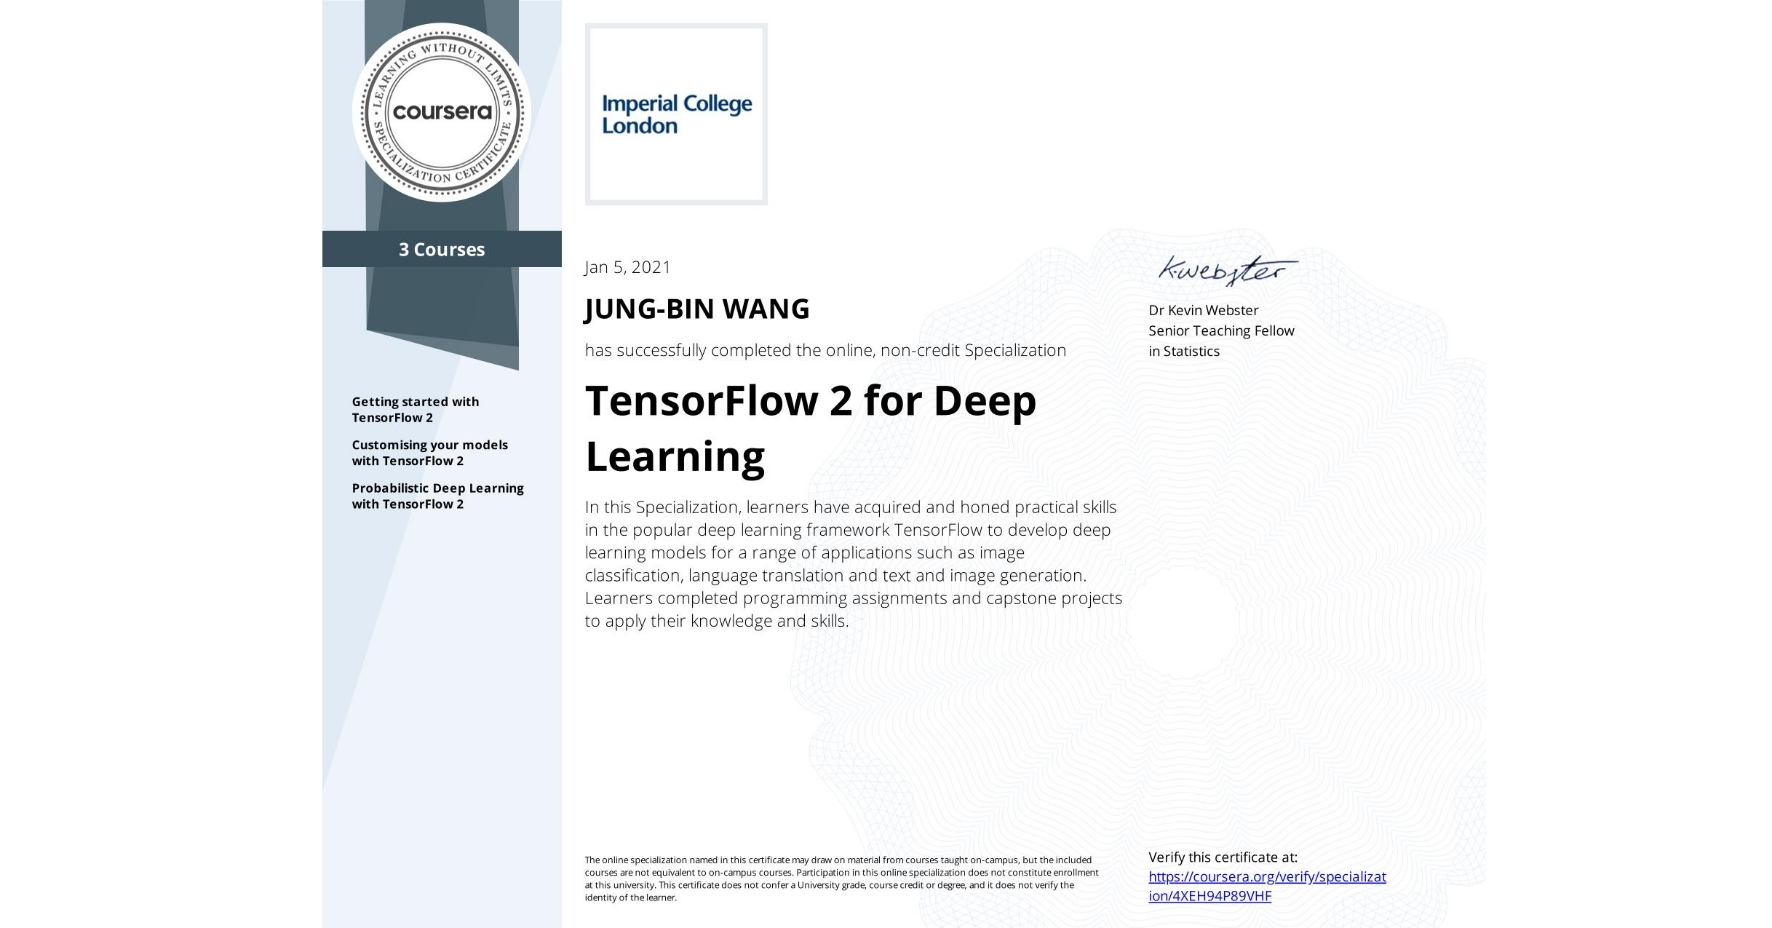 View certificate for JUNG-BIN WANG, TensorFlow 2 for Deep Learning, offered through Coursera. In this Specialization, learners have acquired and honed practical skills in the popular deep learning framework TensorFlow to develop deep learning models for a range of applications such as image classification, language translation and text and image generation. Learners completed programming assignments and capstone projects to apply their knowledge and skills.